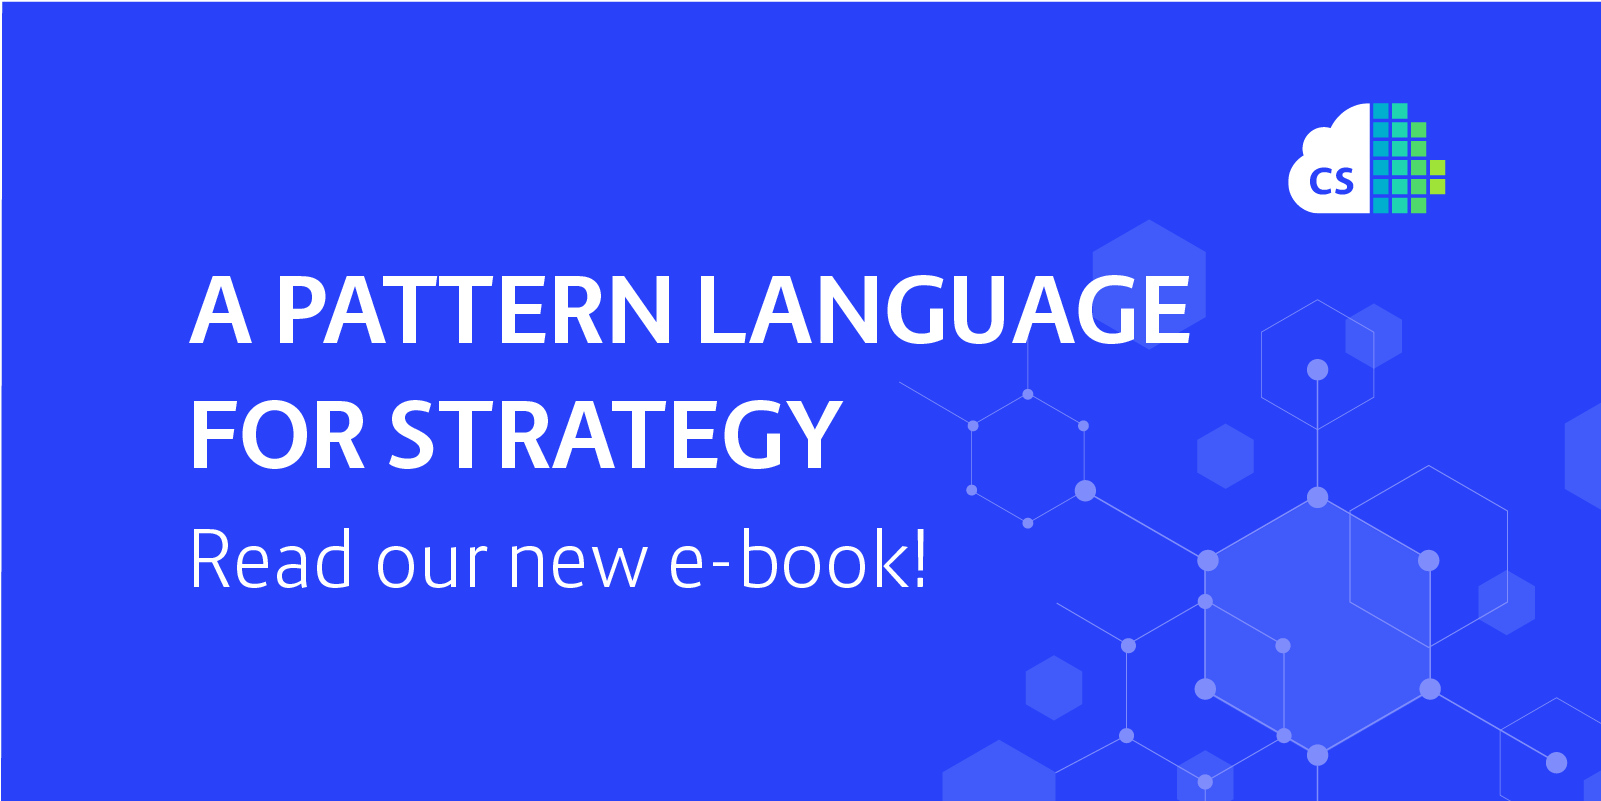 A Pattern Language for Strategy